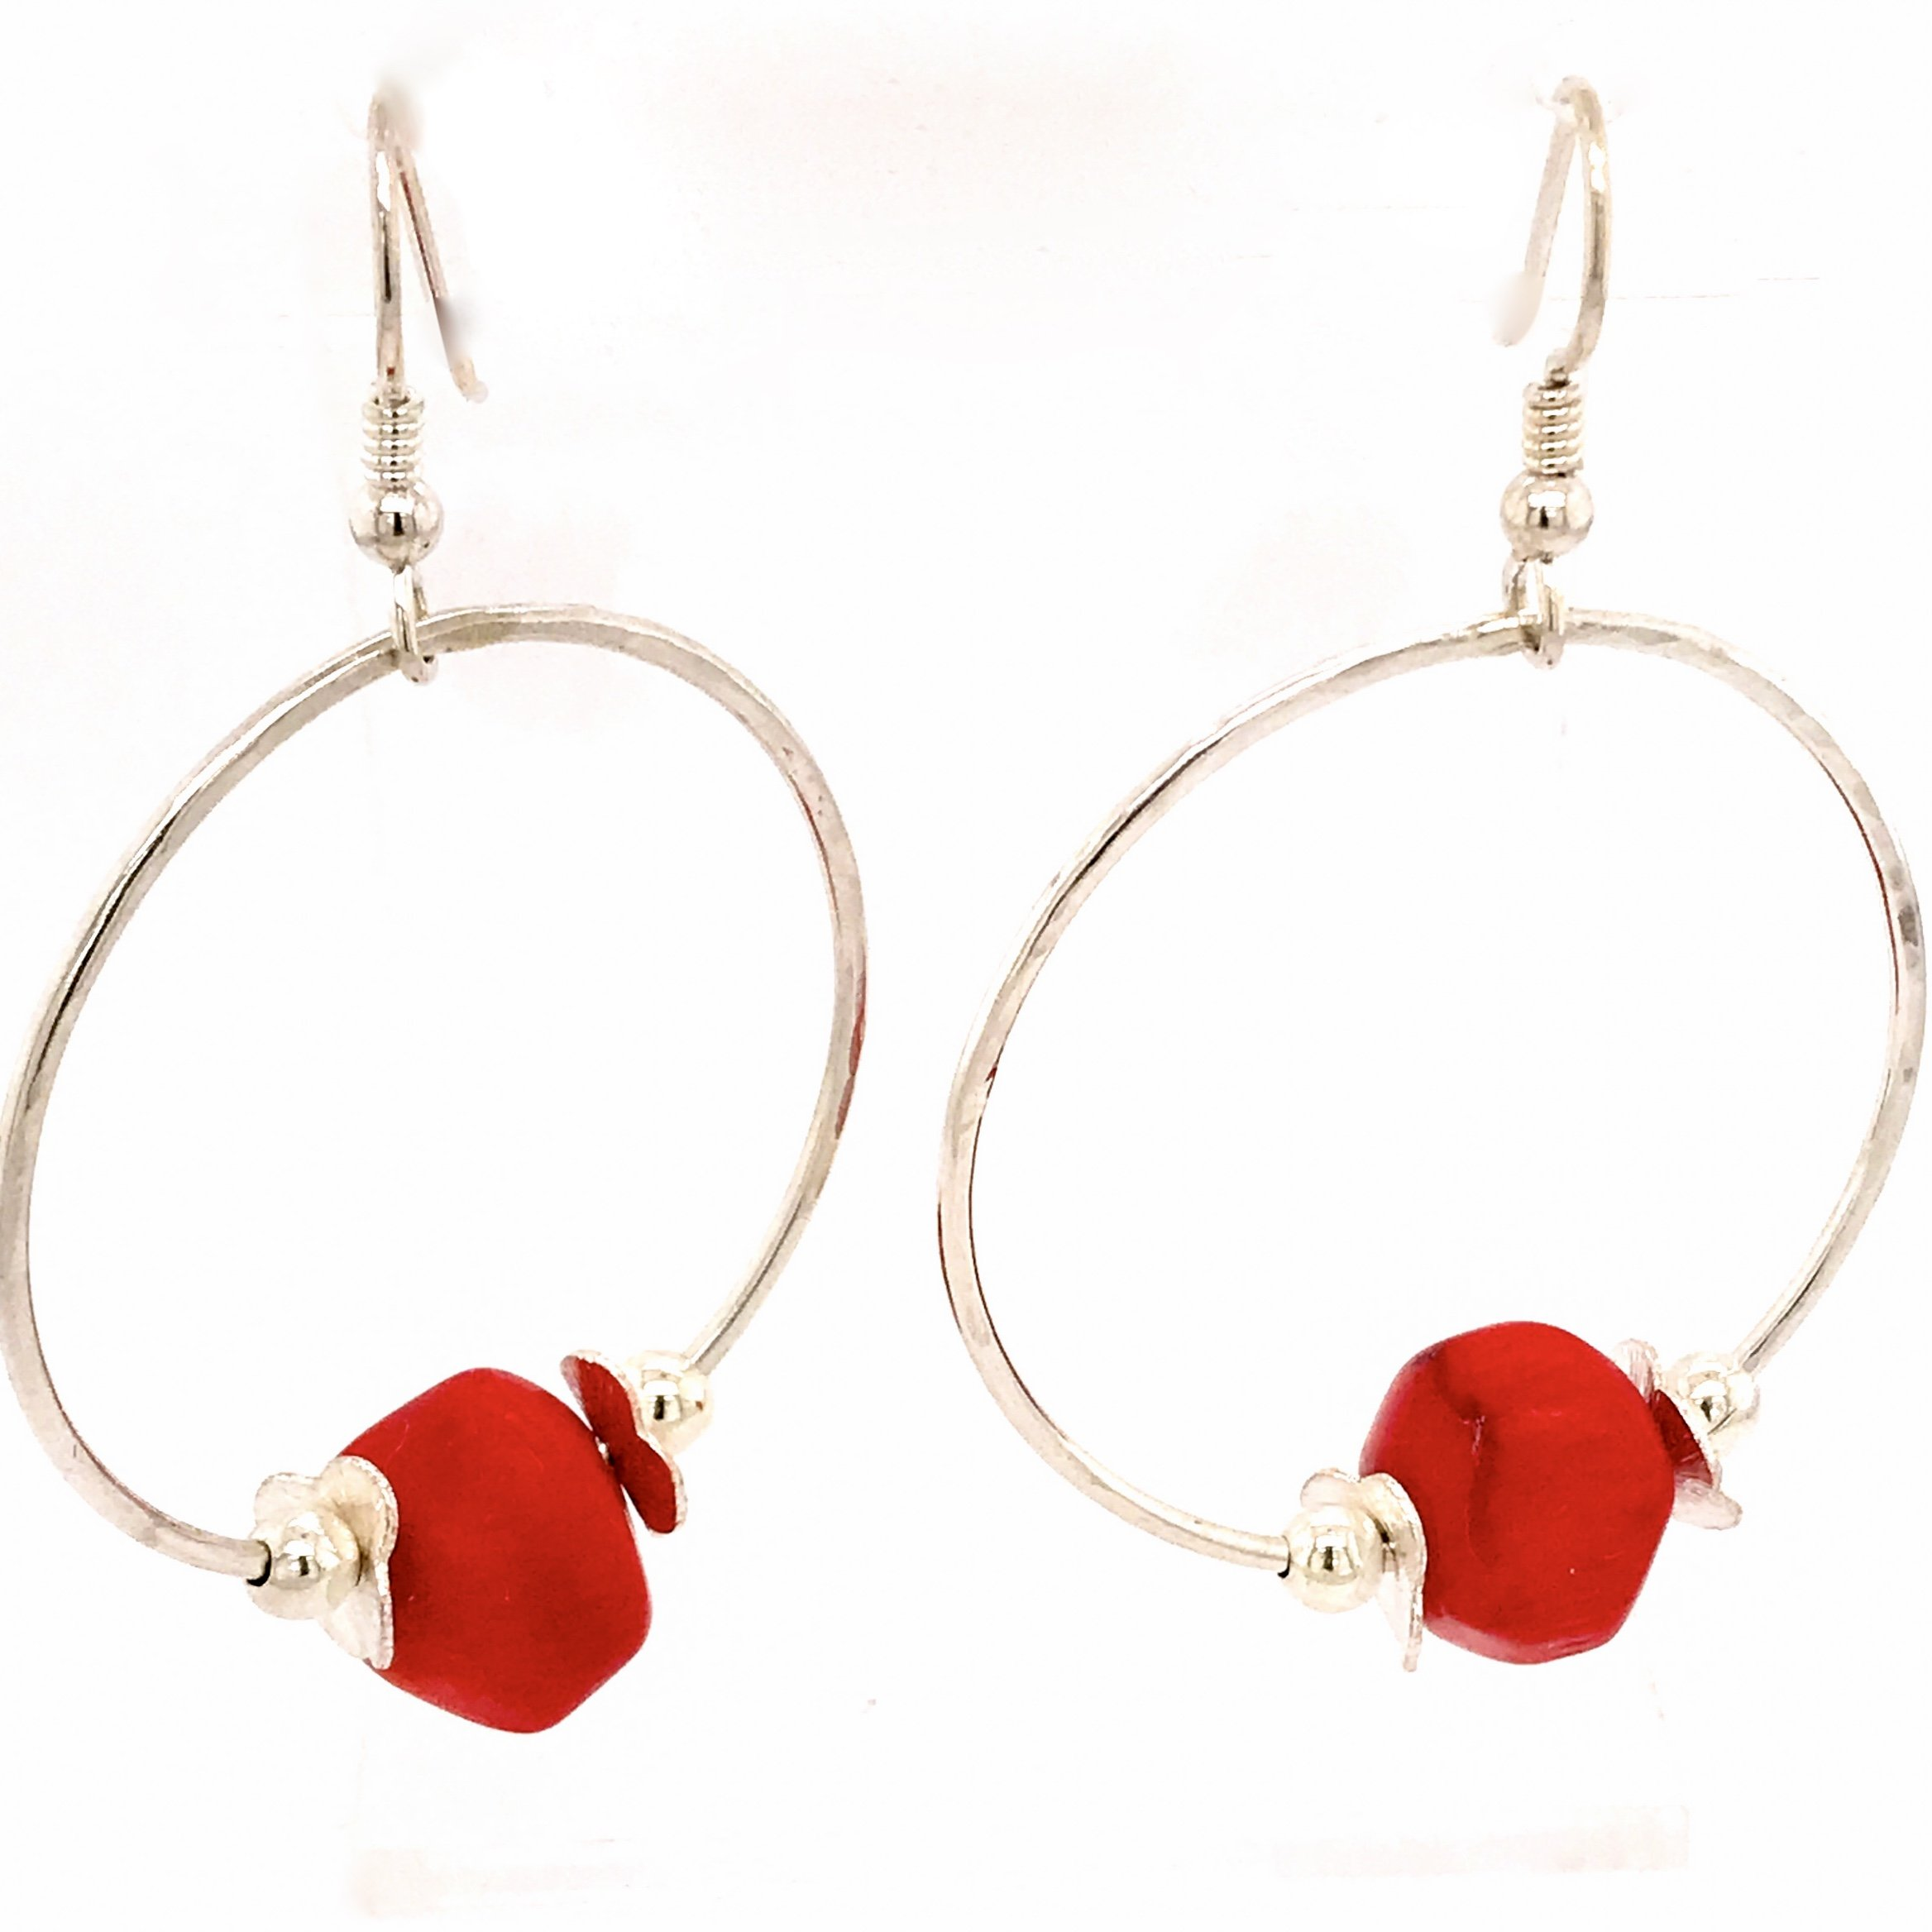 Sunset Orbit Hoop Earrings in Sterling Silver